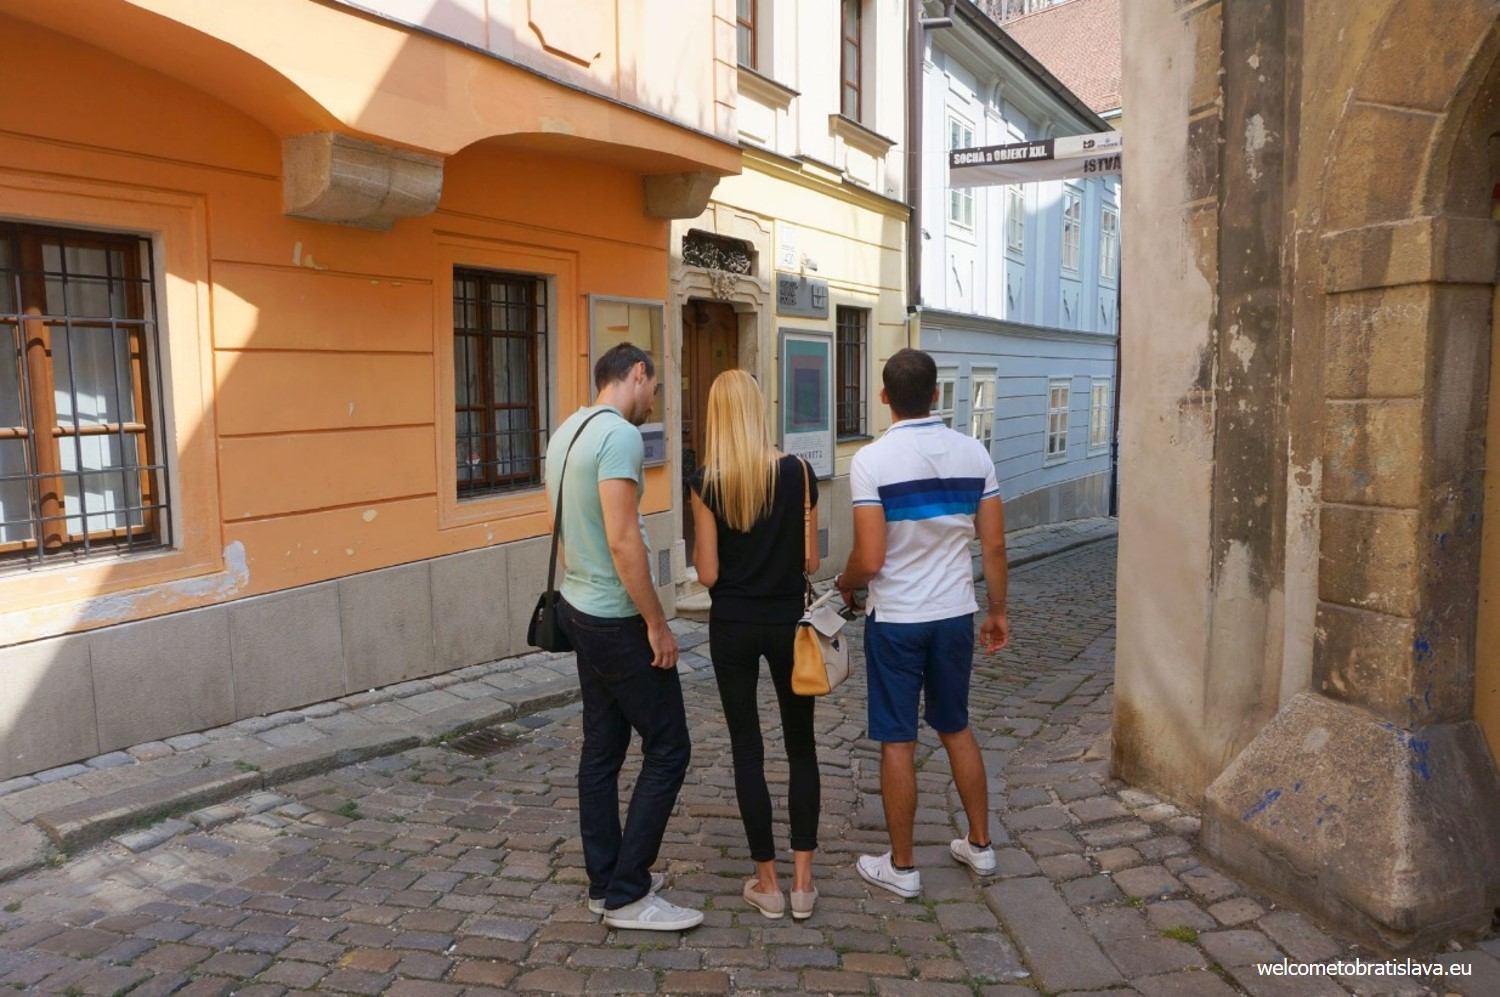 The secrets of Bratislava city trail